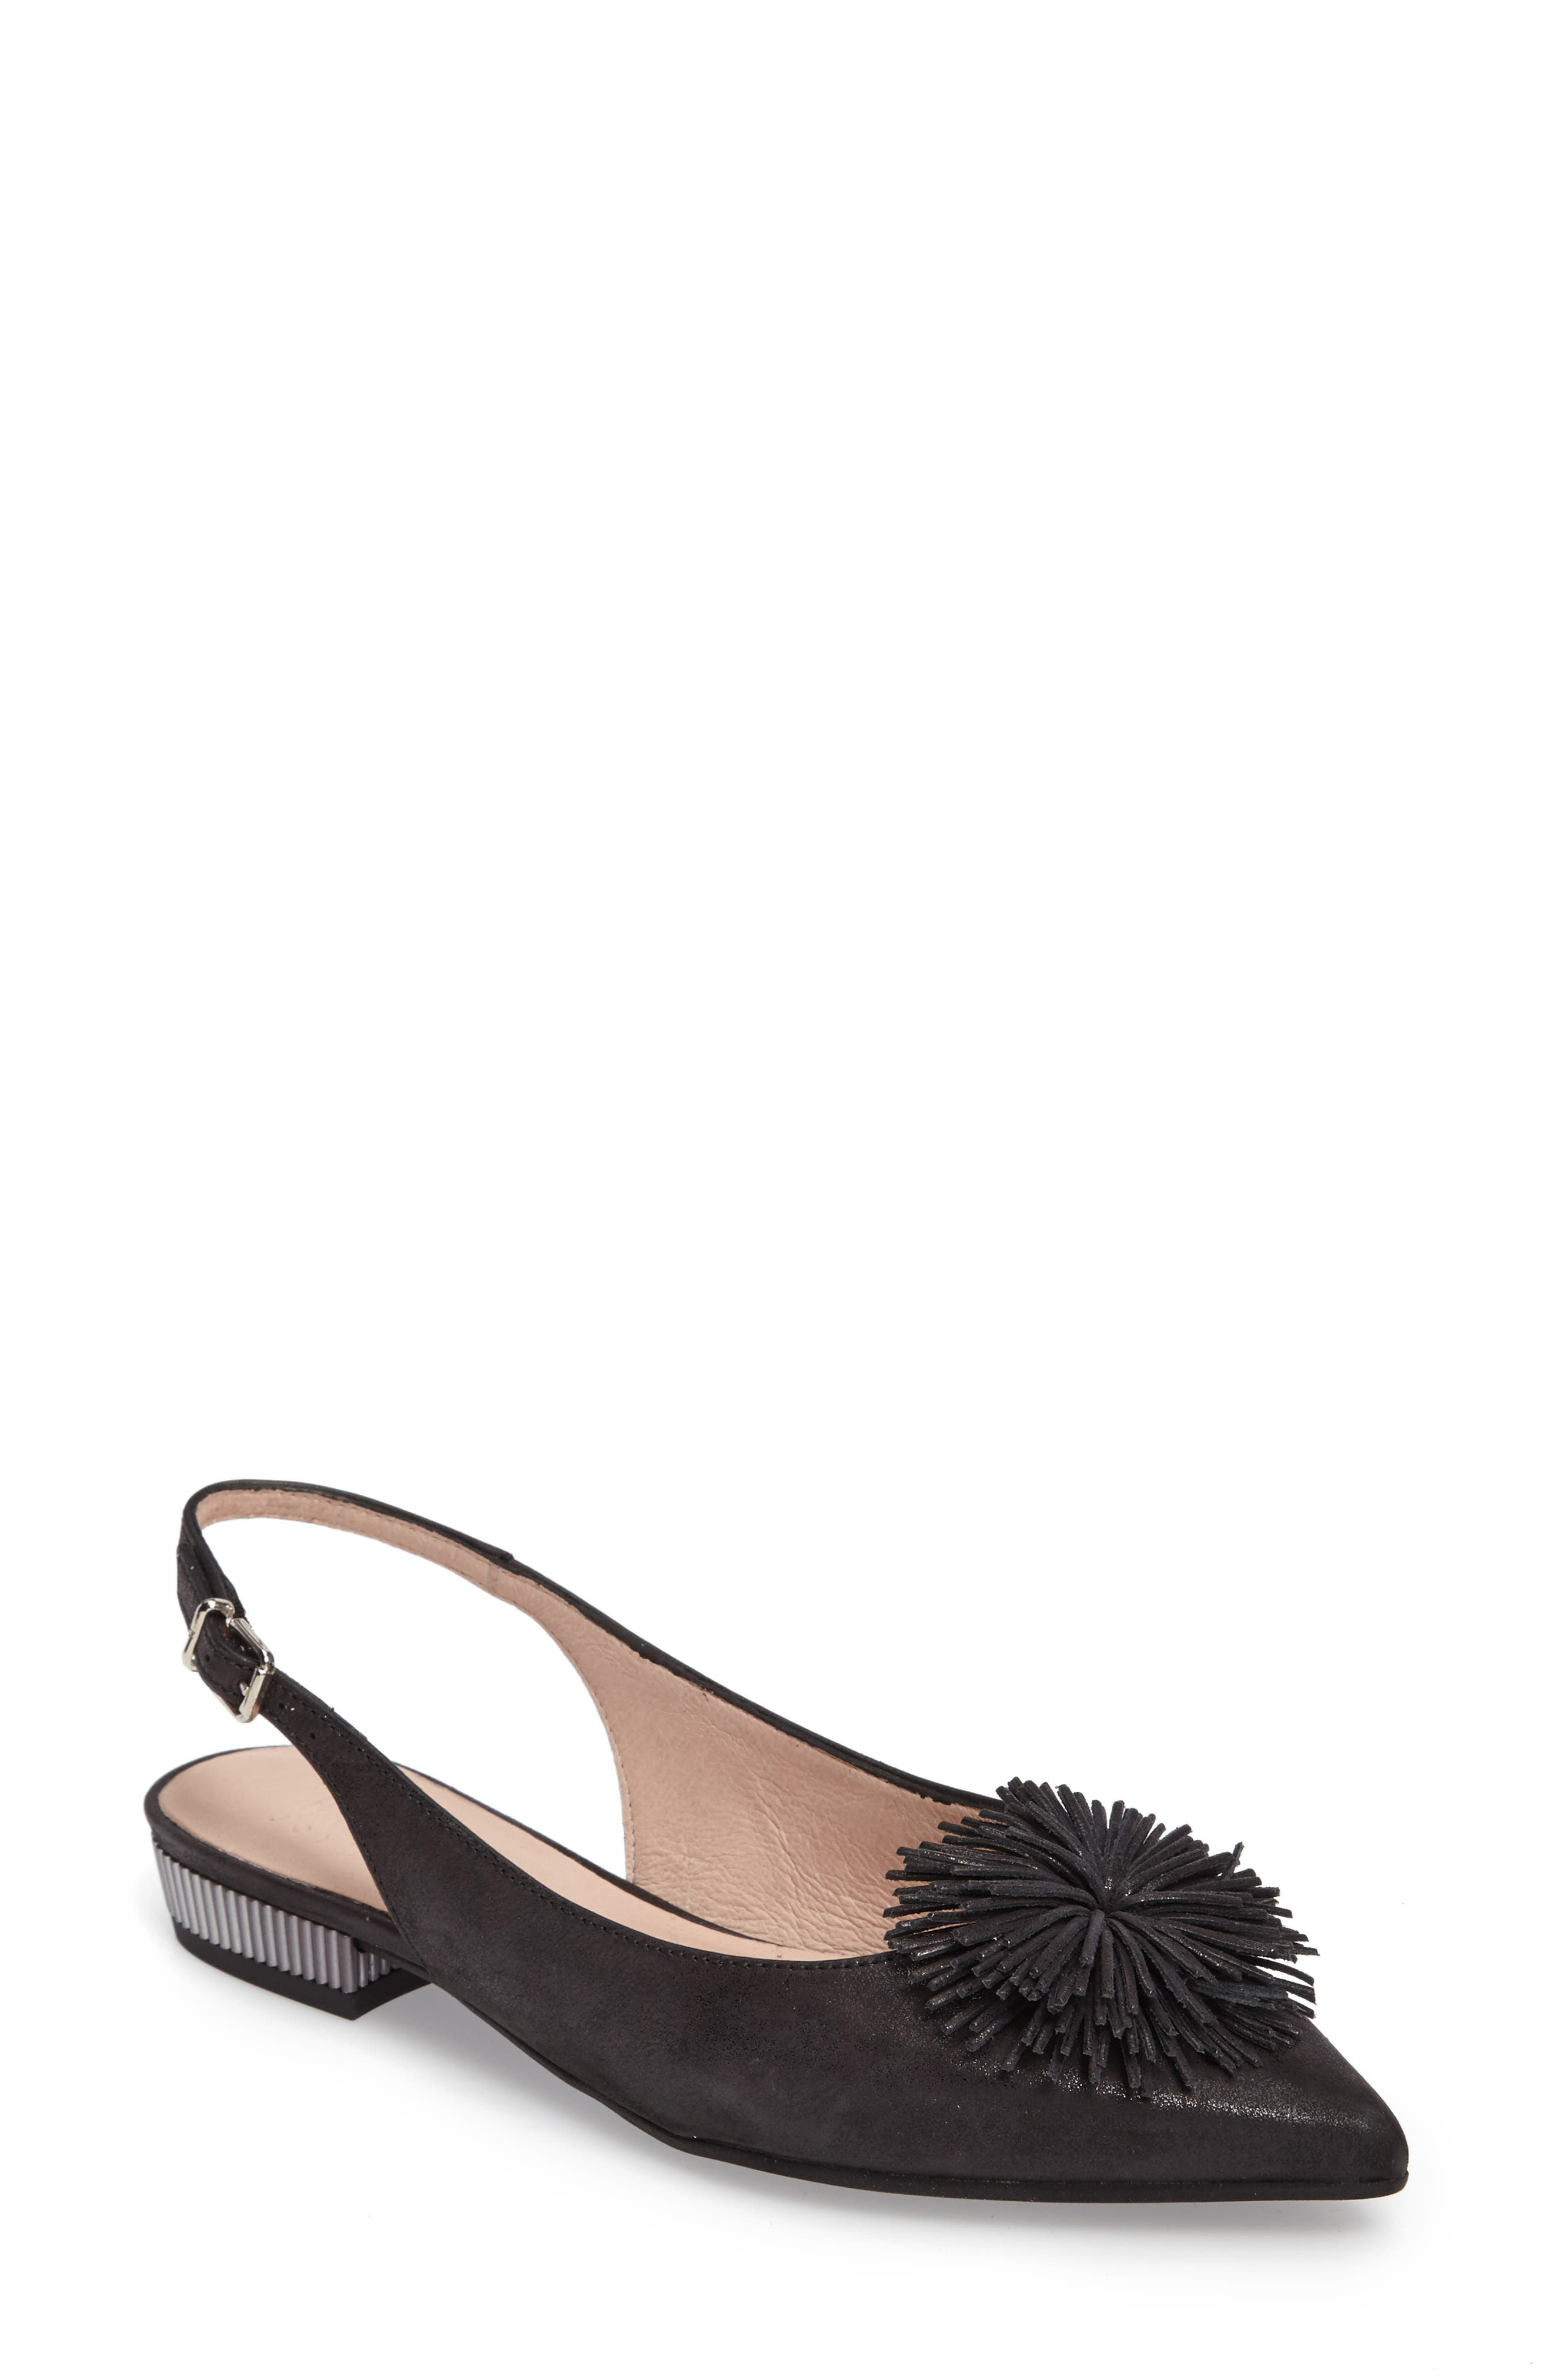 'Faylynn' Fringe Flower Slingback,                         Main,                         color, MAGIC BLACK LEATHER